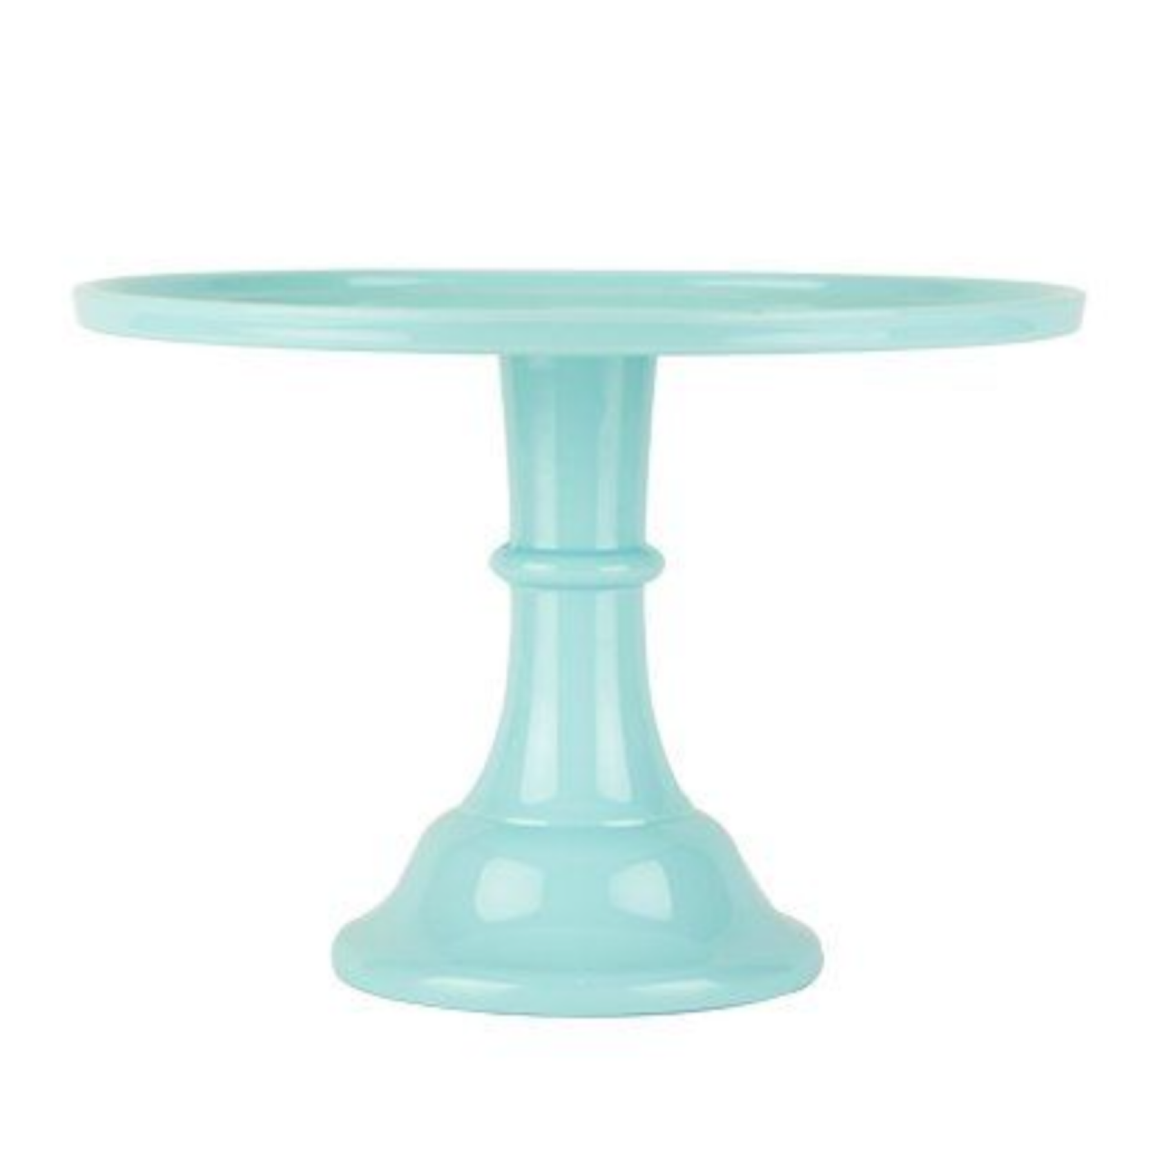 CAKE STAND - MINT